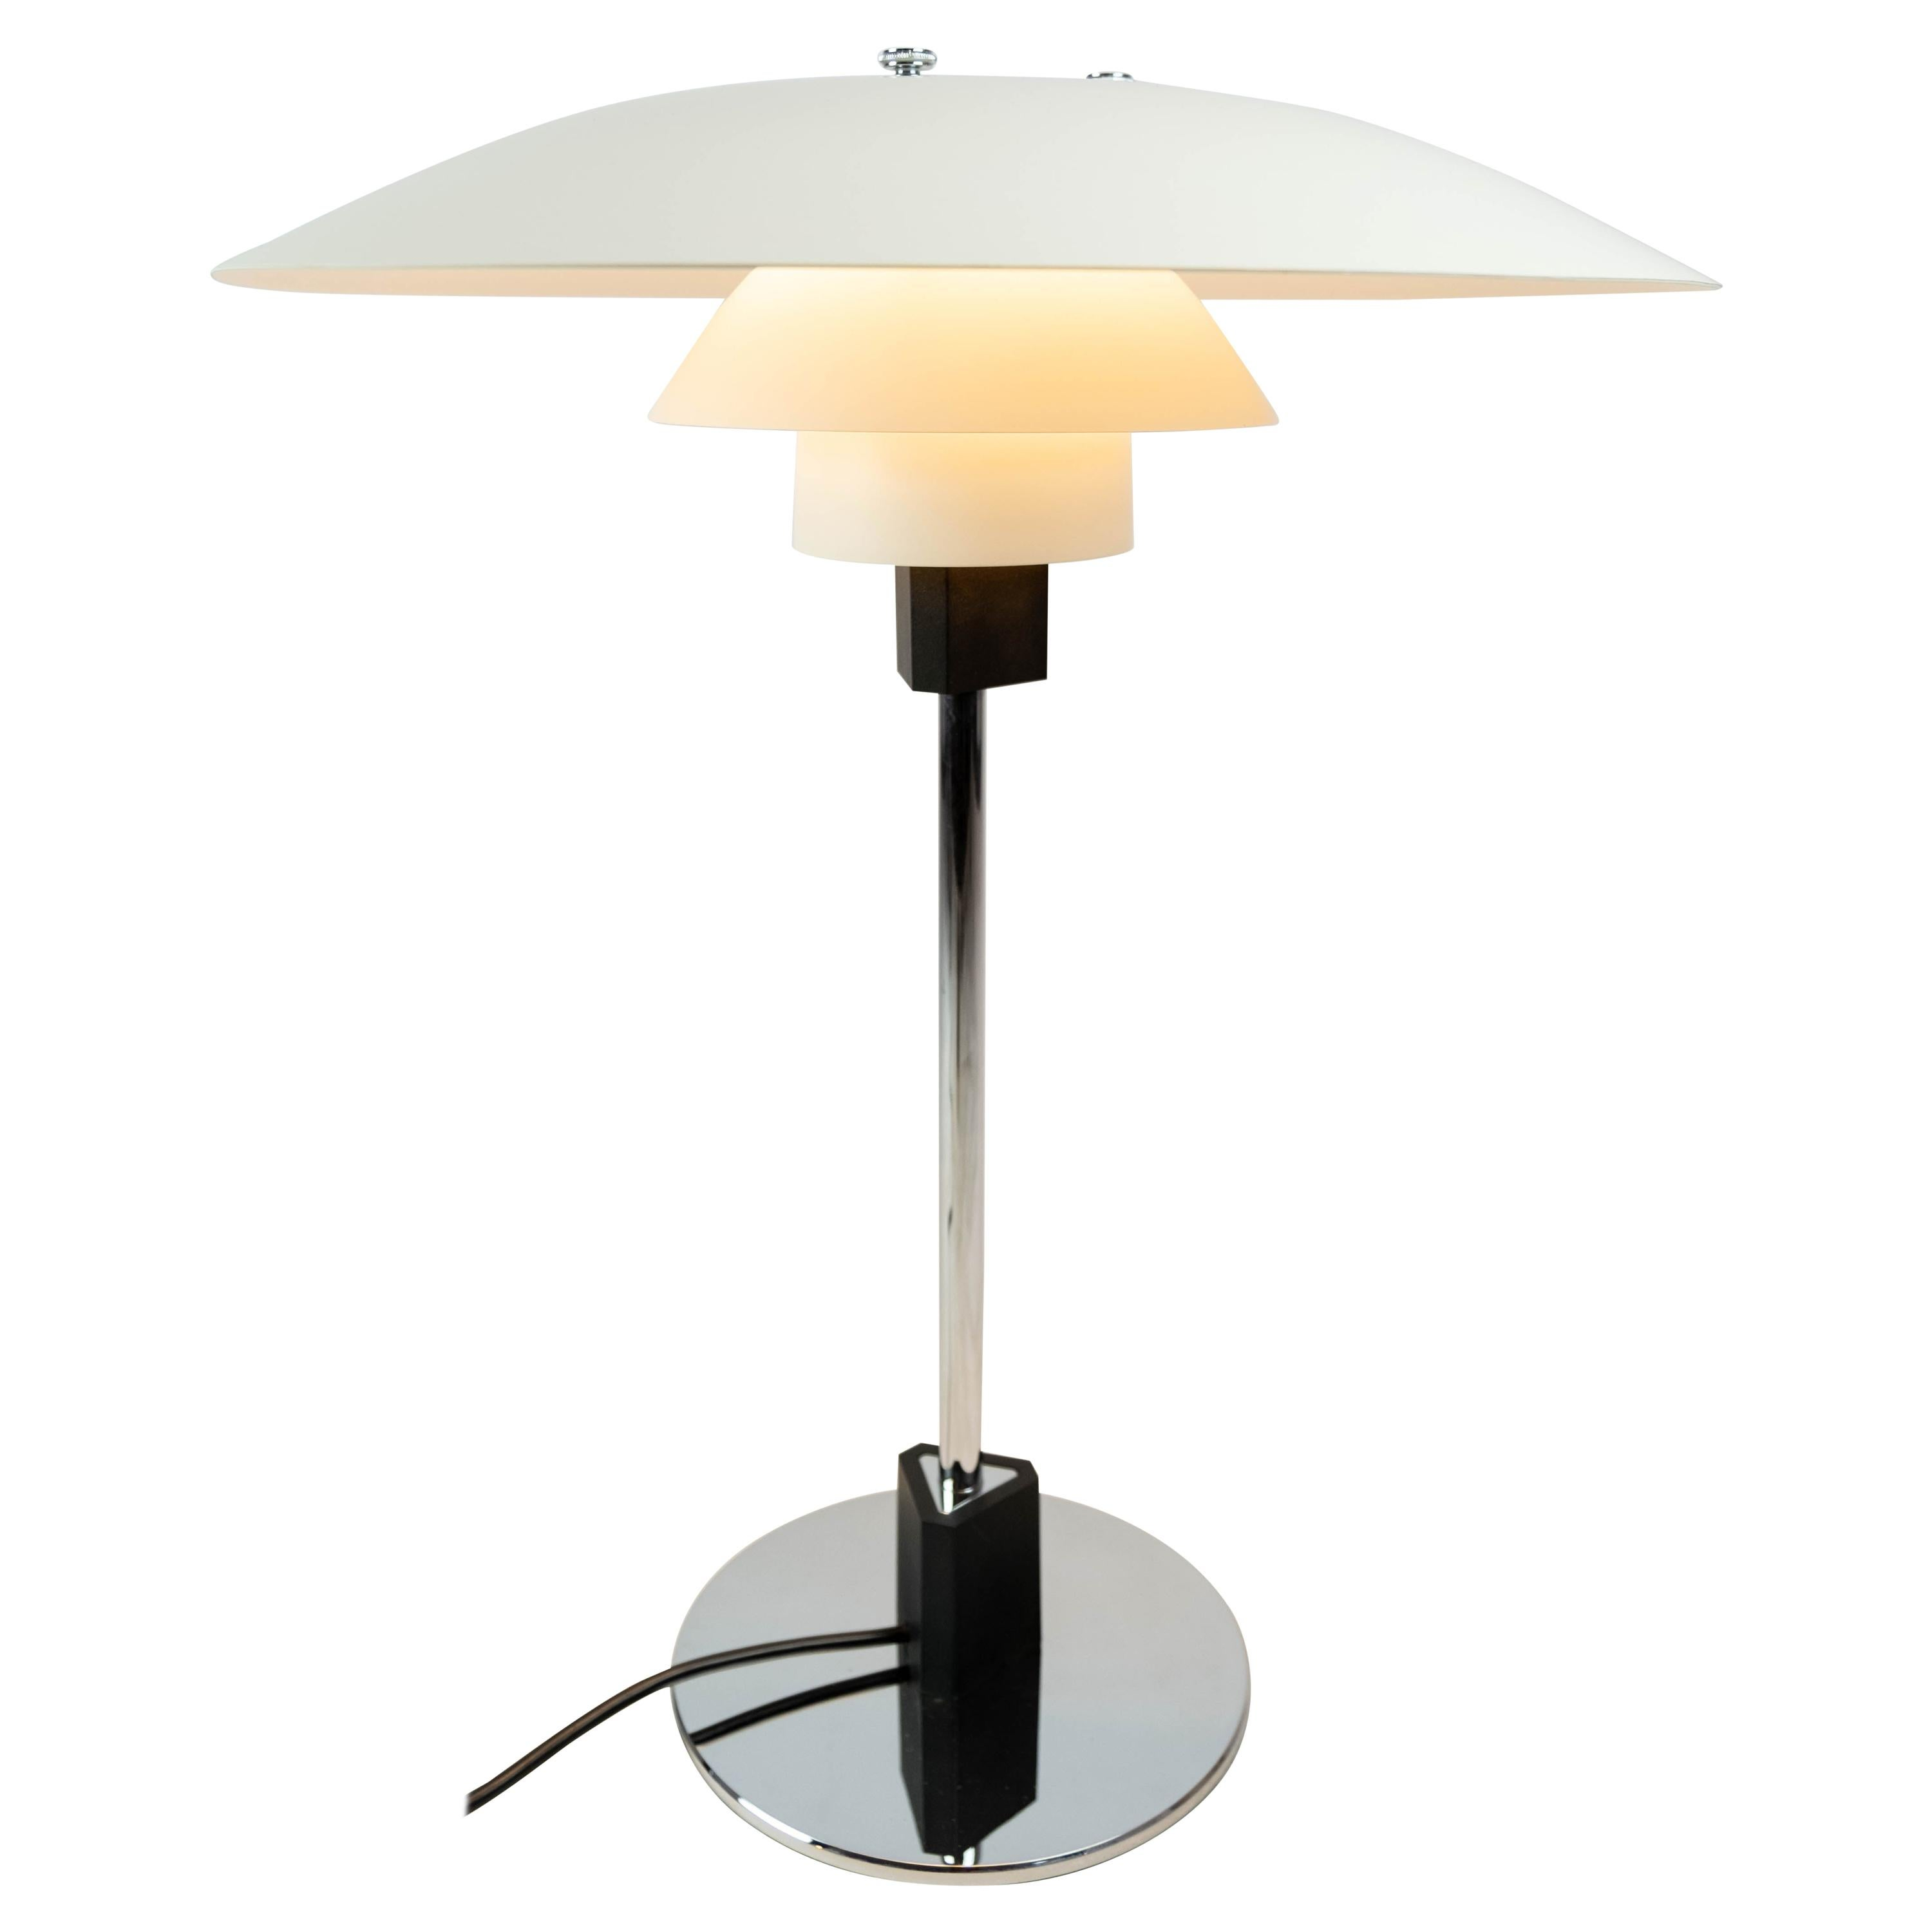 PH 4/3 Table Lamp Designed by Poul Henningsen and Manufactured by Louis Poulsen